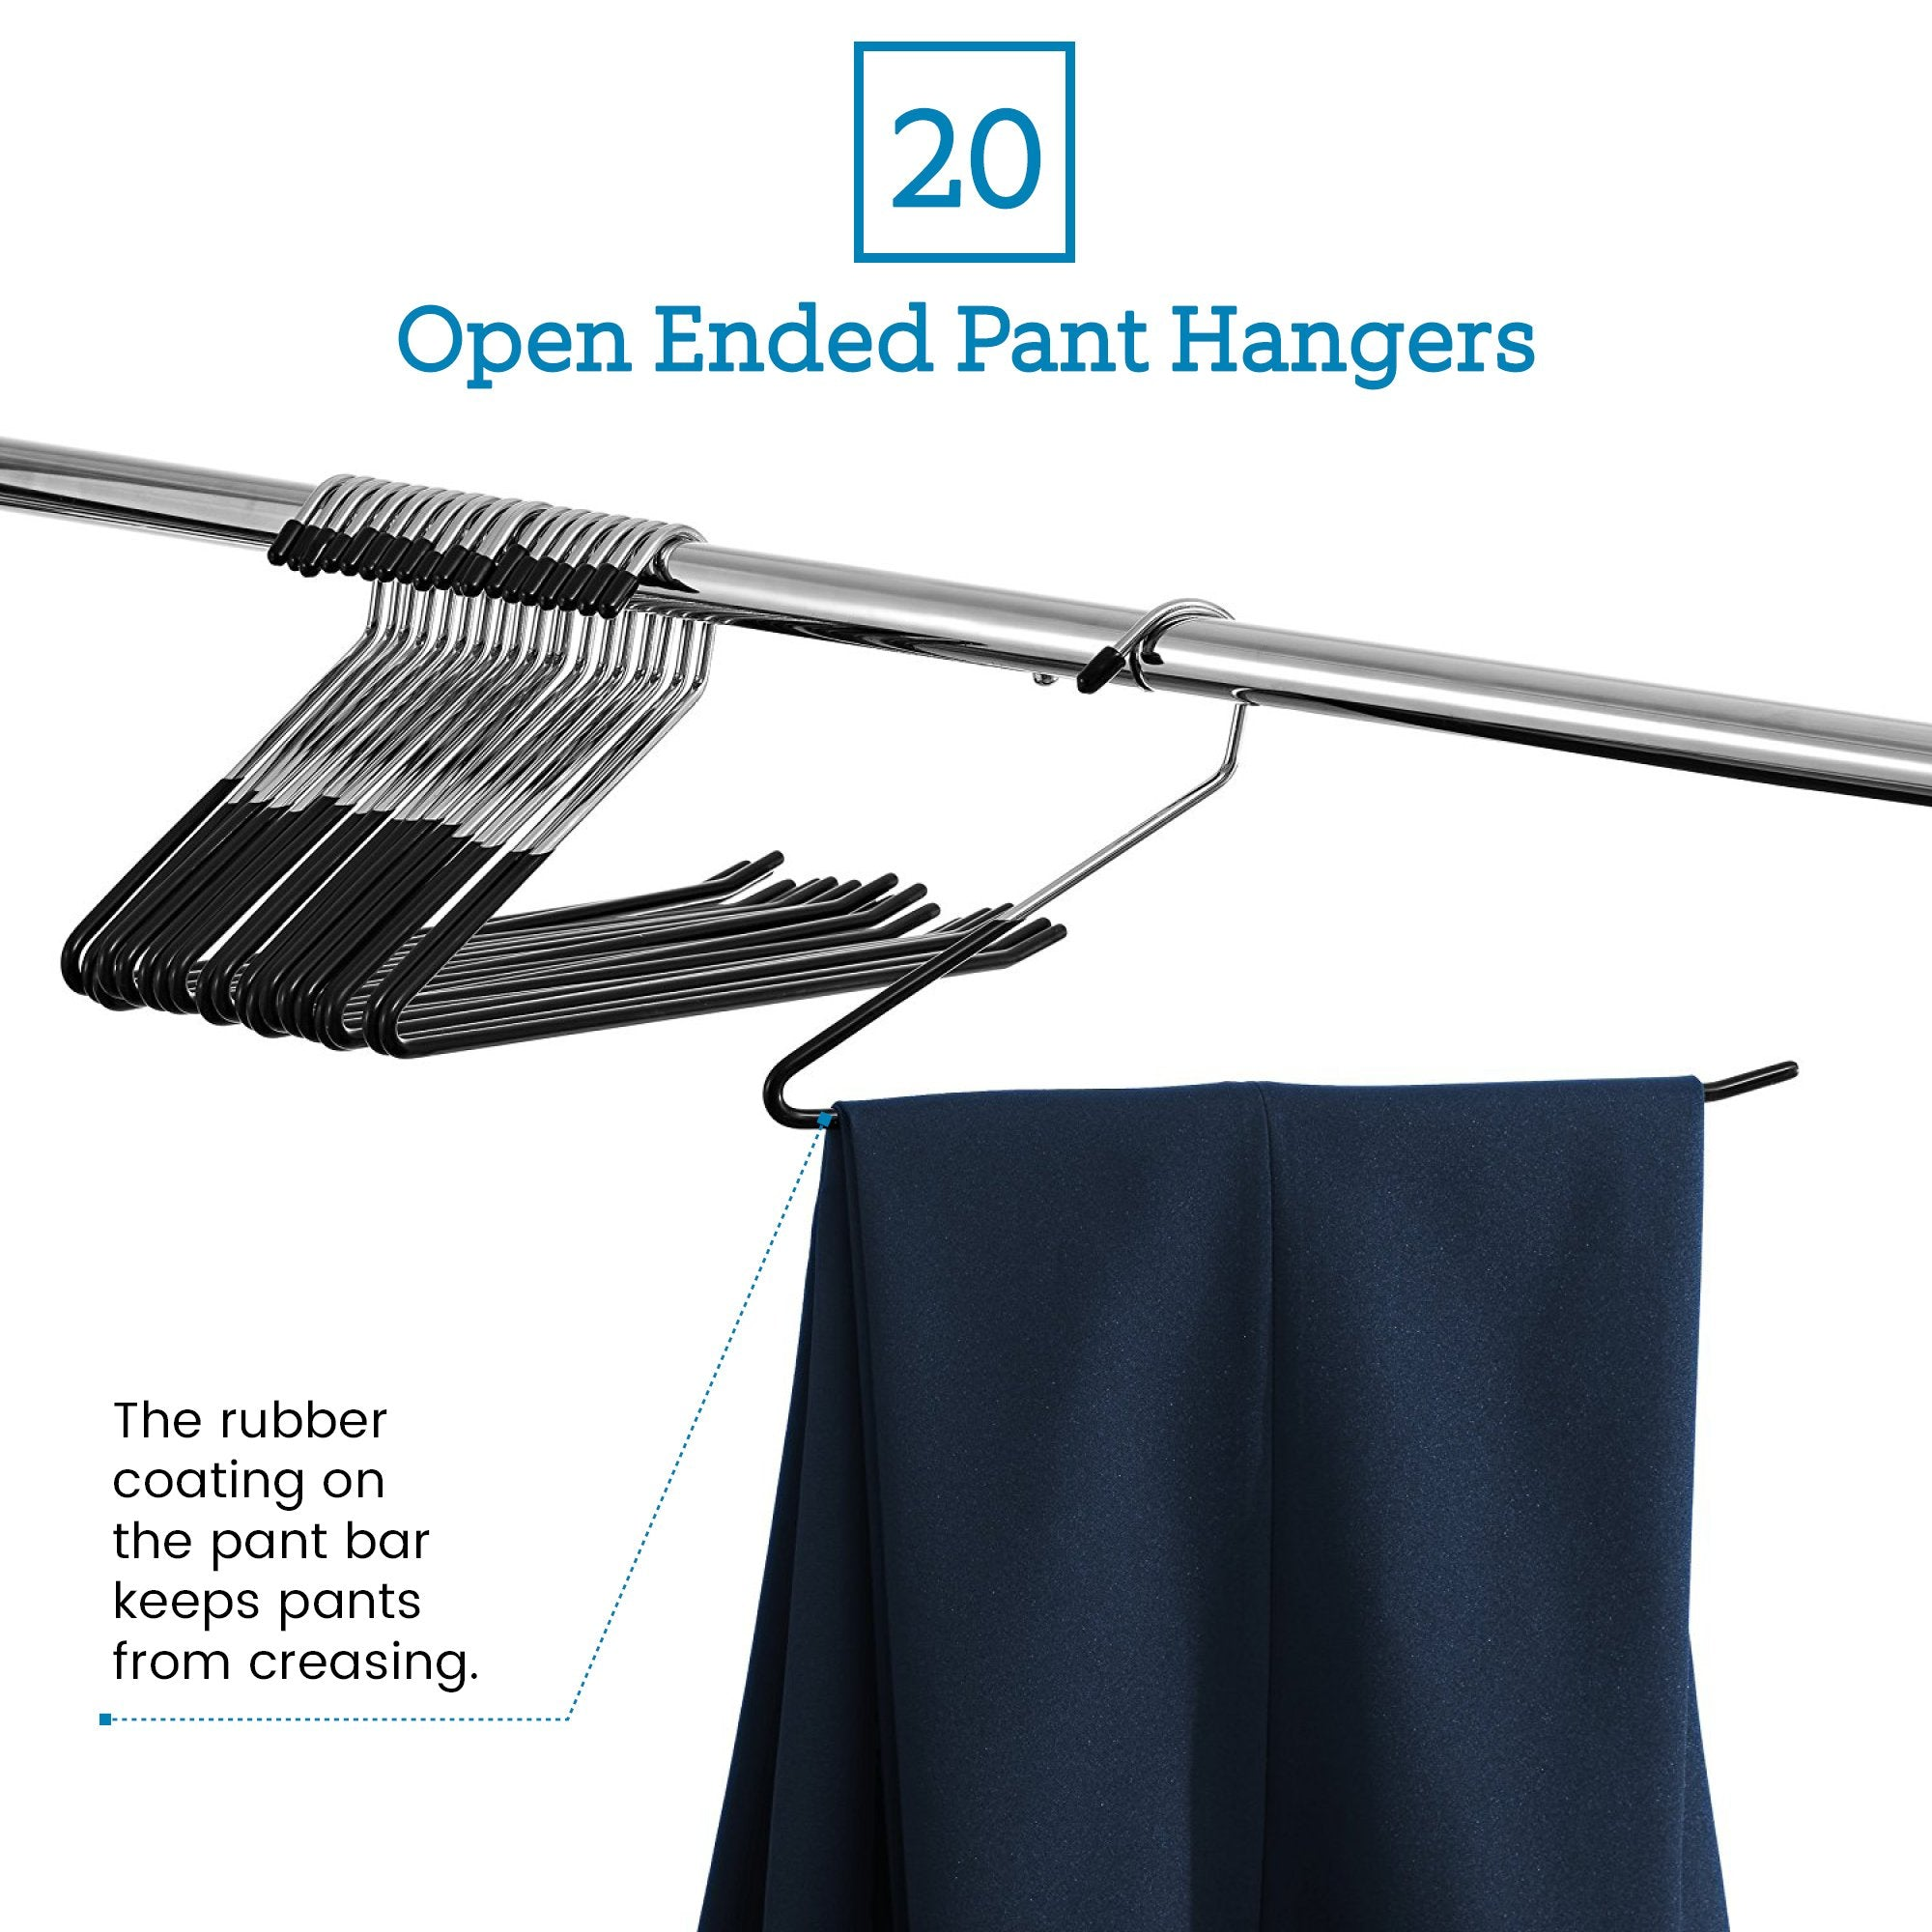 Slack/Trousers Pants Hangers - 20 Pack